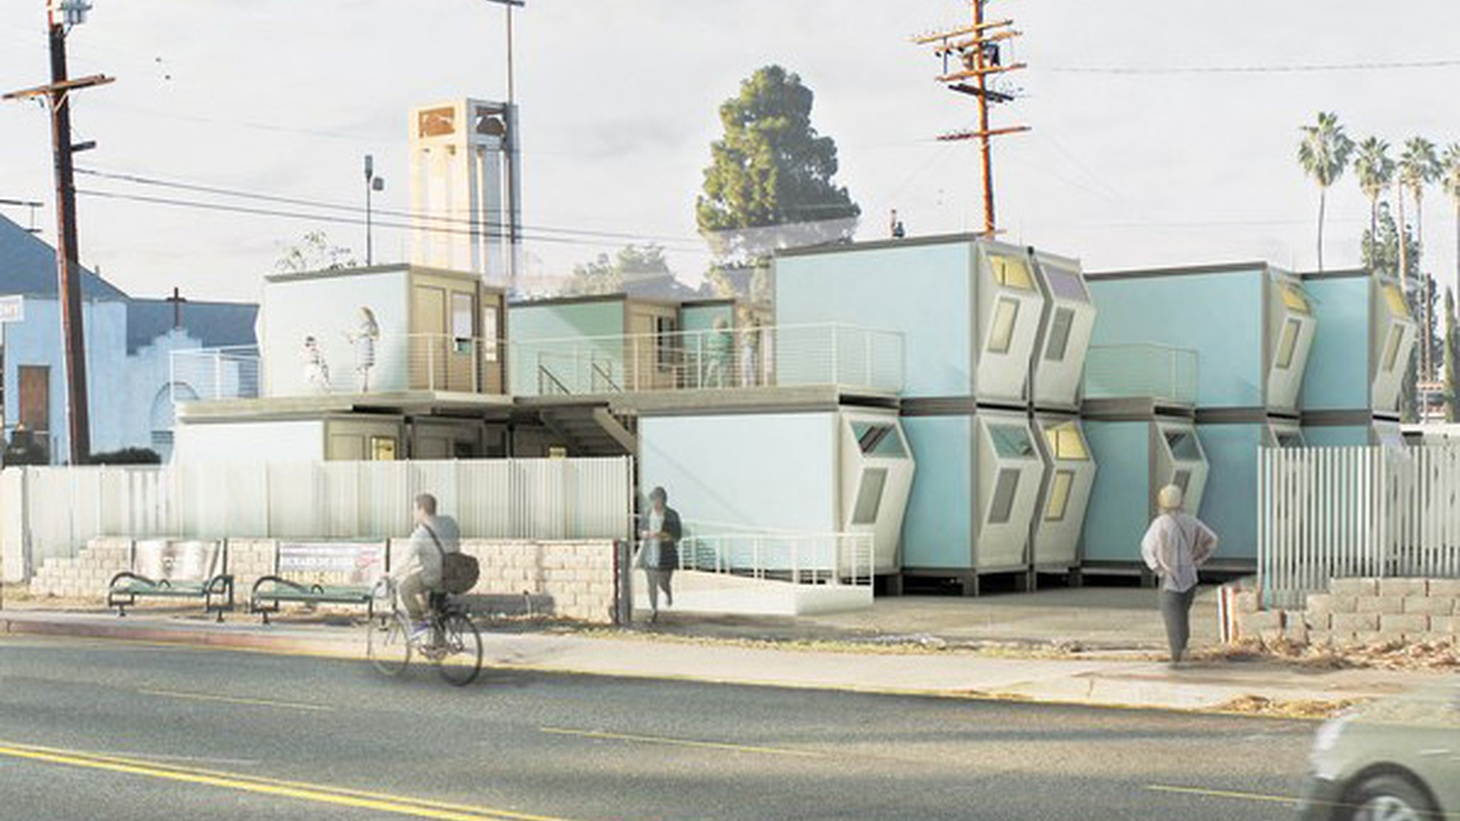 Tens of thousands of people are currently living on LA's streets. Last November voters passed Measure HHH -- to direct $1.3 billion to build more permanent supporting housing in LA County. Last week they passed Measure H, to provide the supportive services.